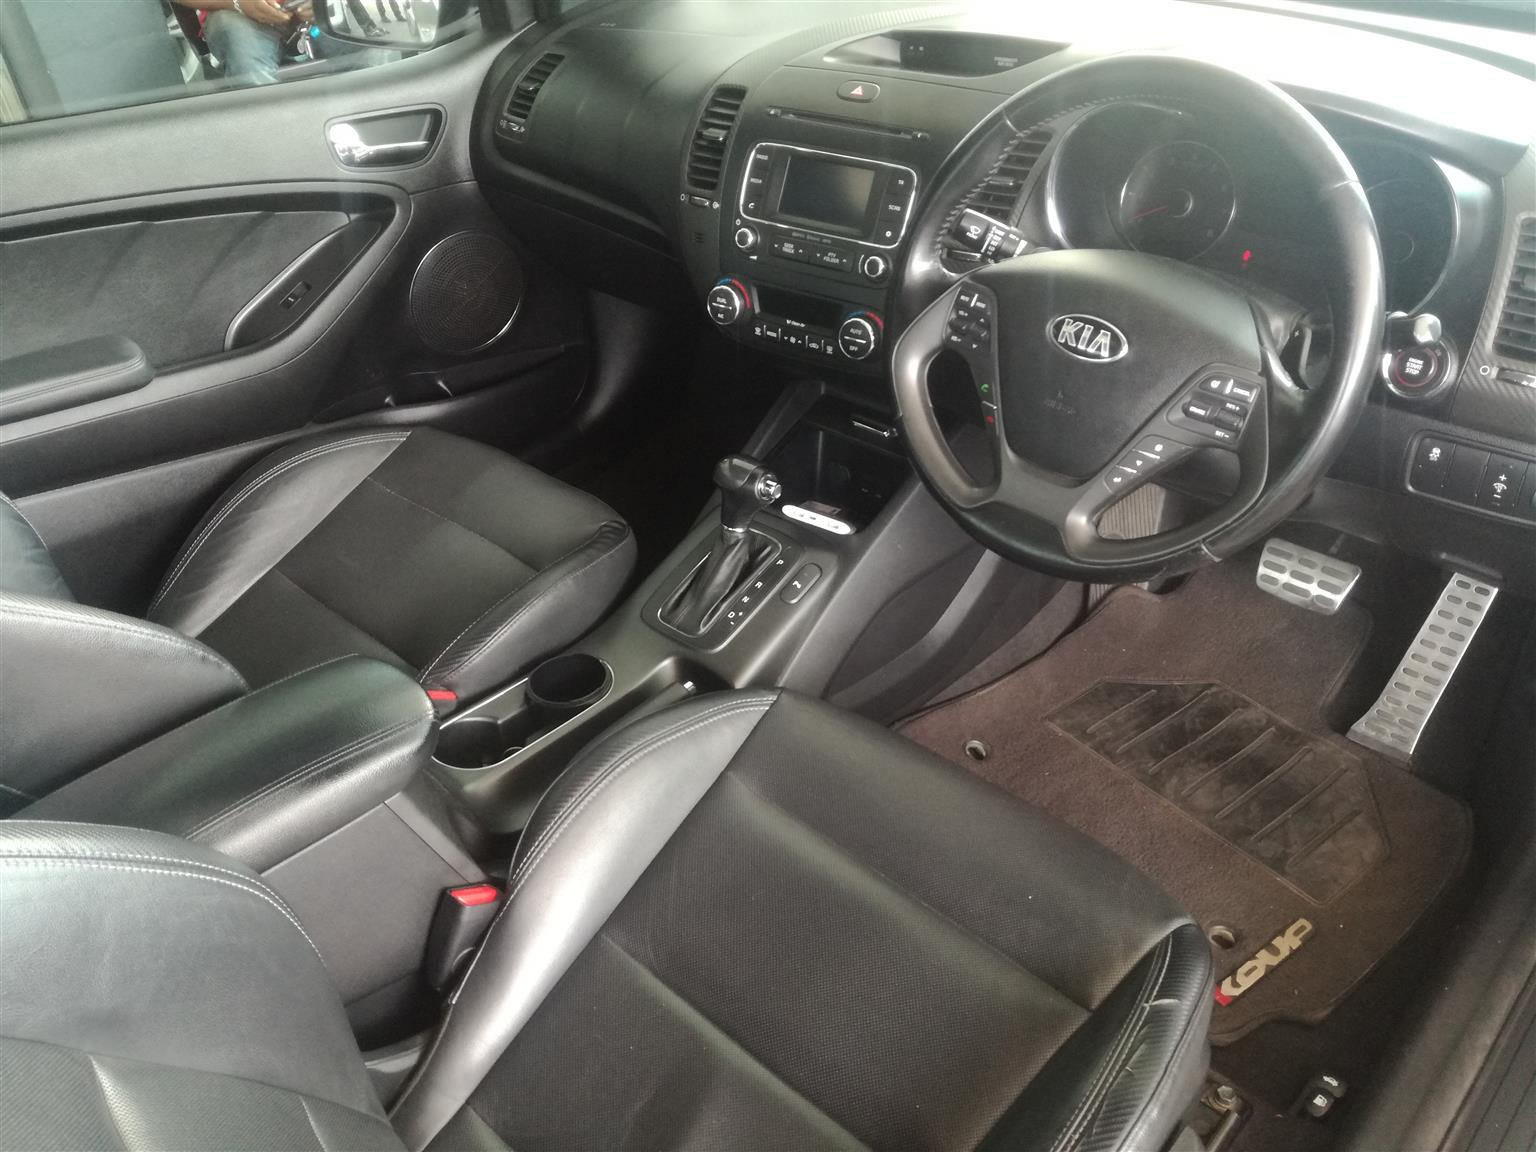 2015 Kia Cerato 1.6 EX 5 door automatic